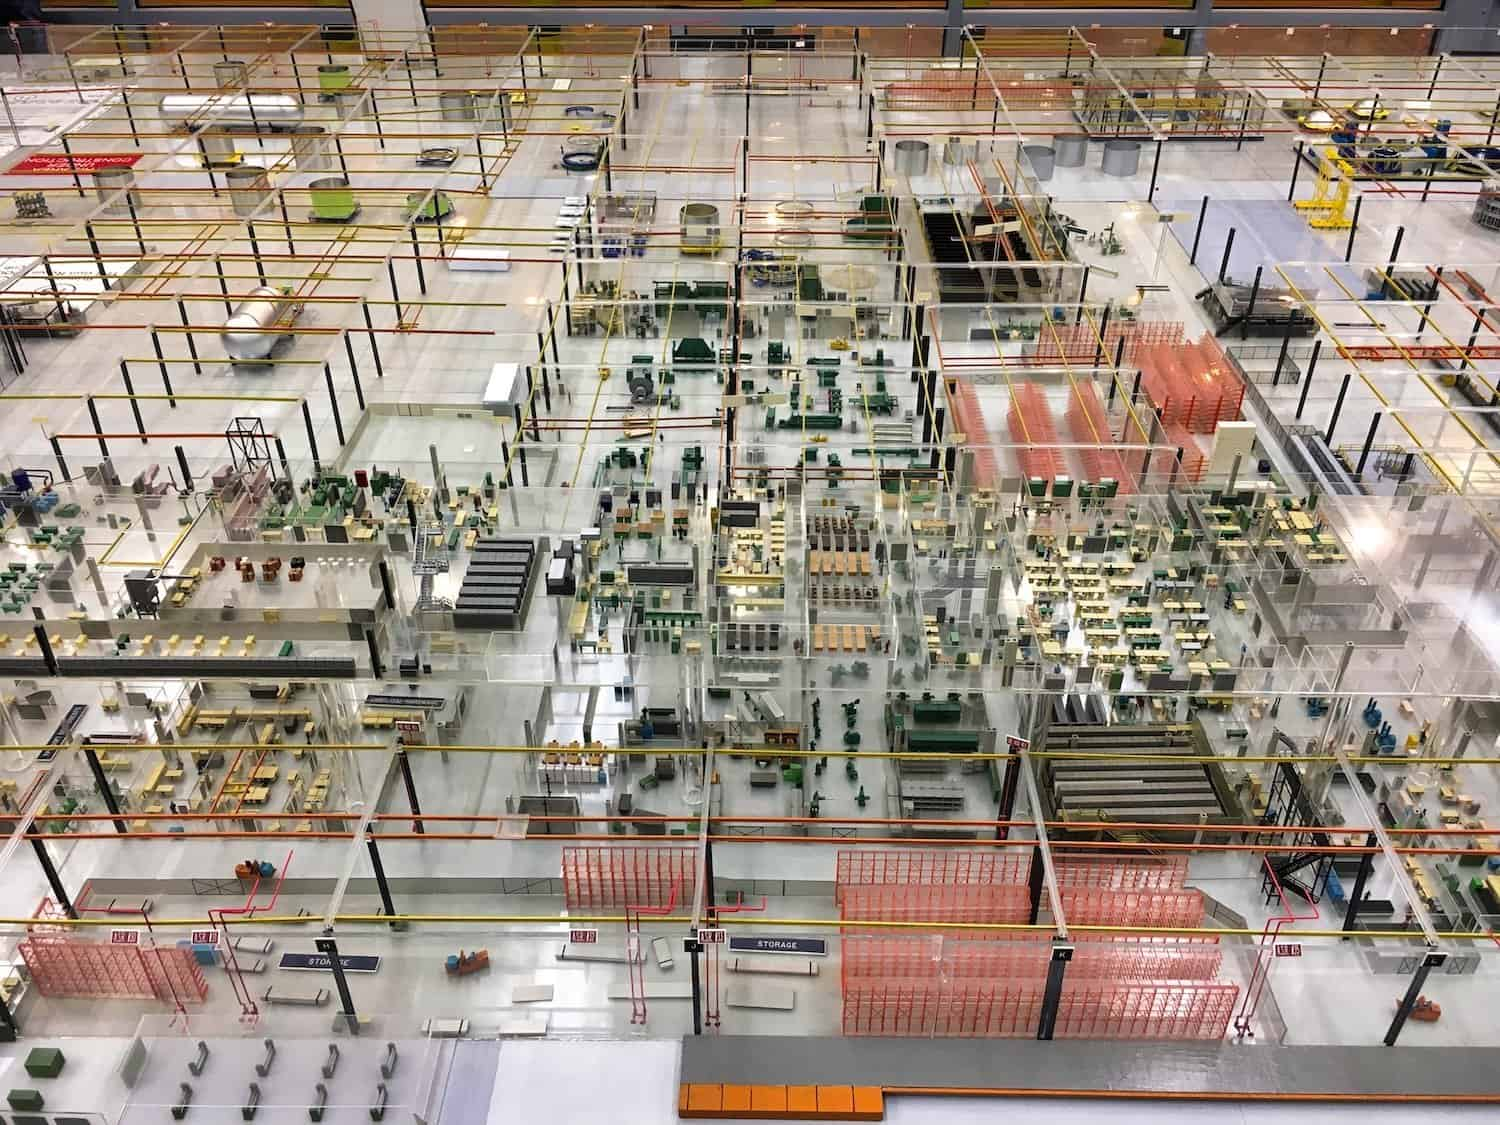 Michoud Assembly Facility - Model Room